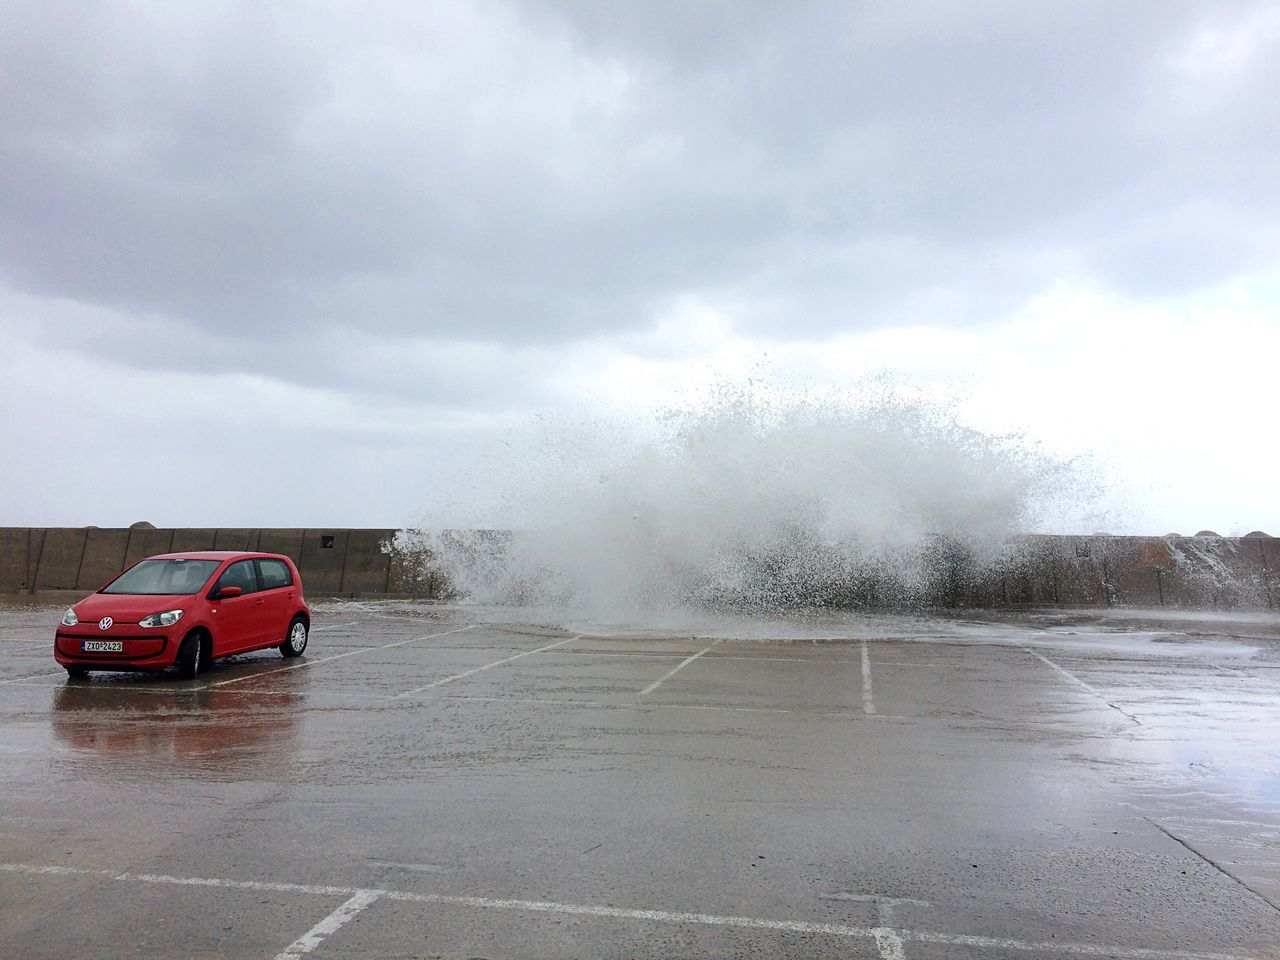 Car Parking Parking Lot No People Stormy Weather Sea And Sky Waves Ocean Spray Outdoors Day Coast Cloud - Sky Red Car Noise Roaring Sea Alone Only Left Behind Power Of Nature